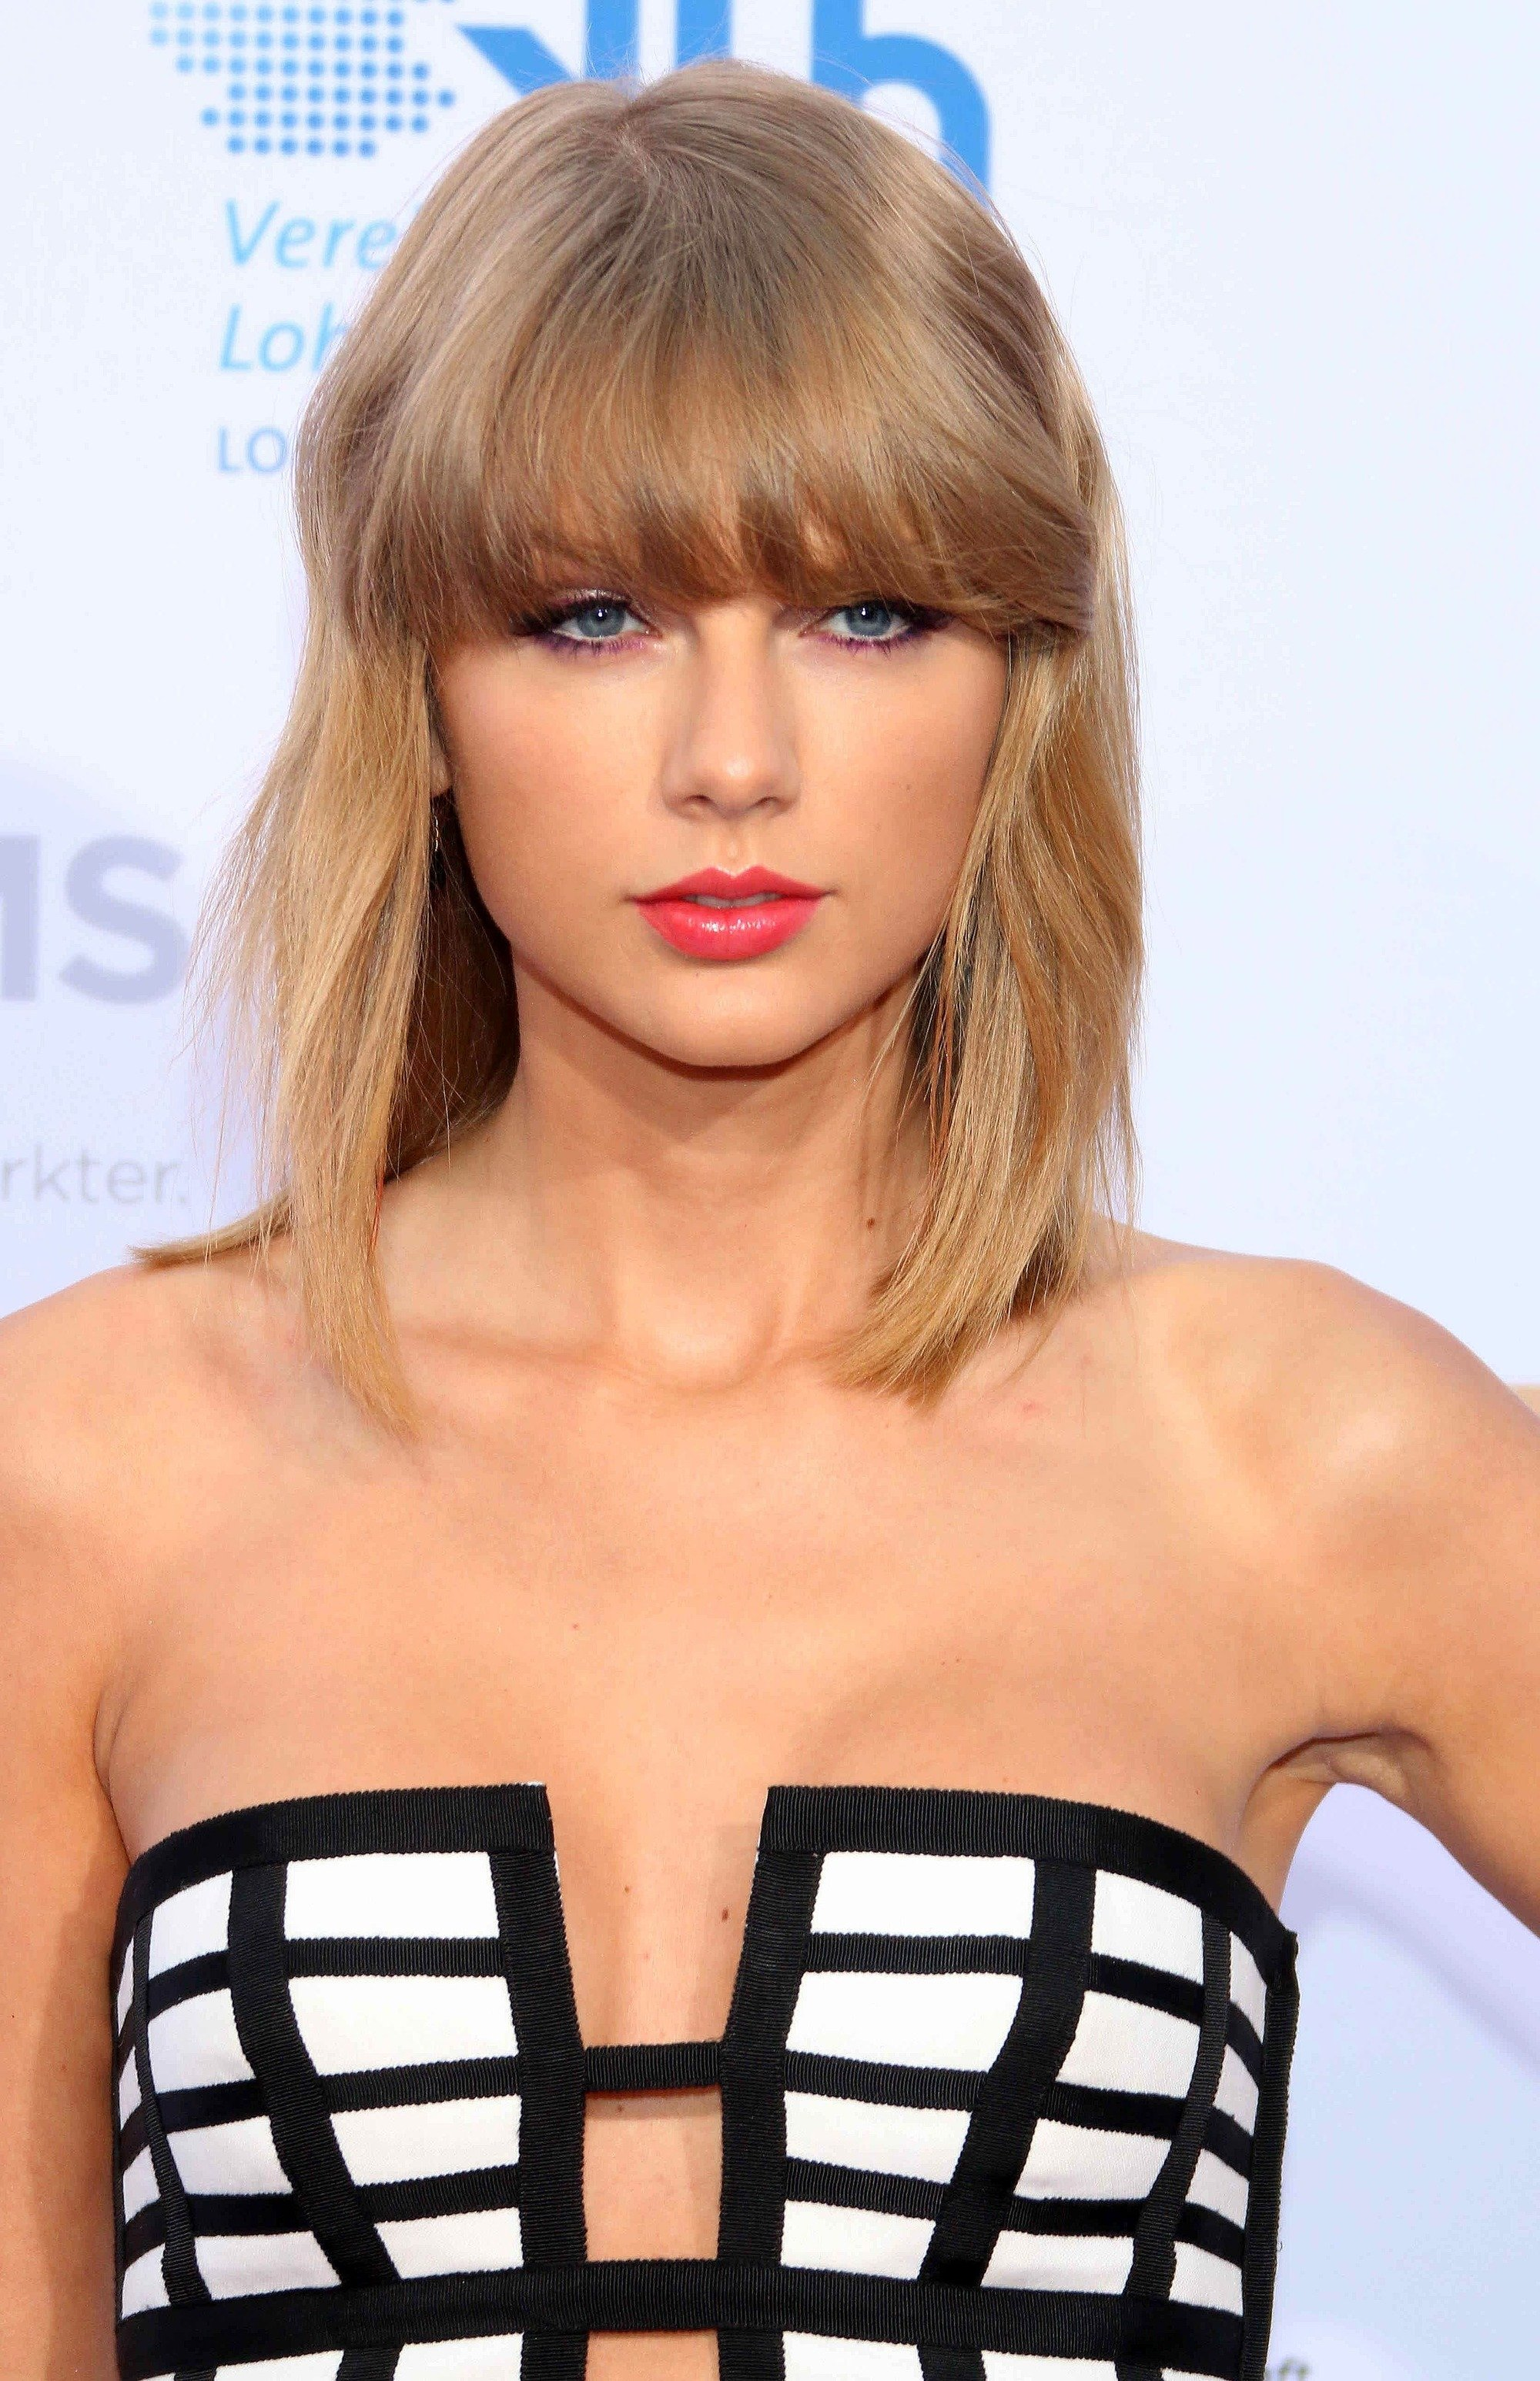 singer taylor swift with short shoulder length hair and bangs